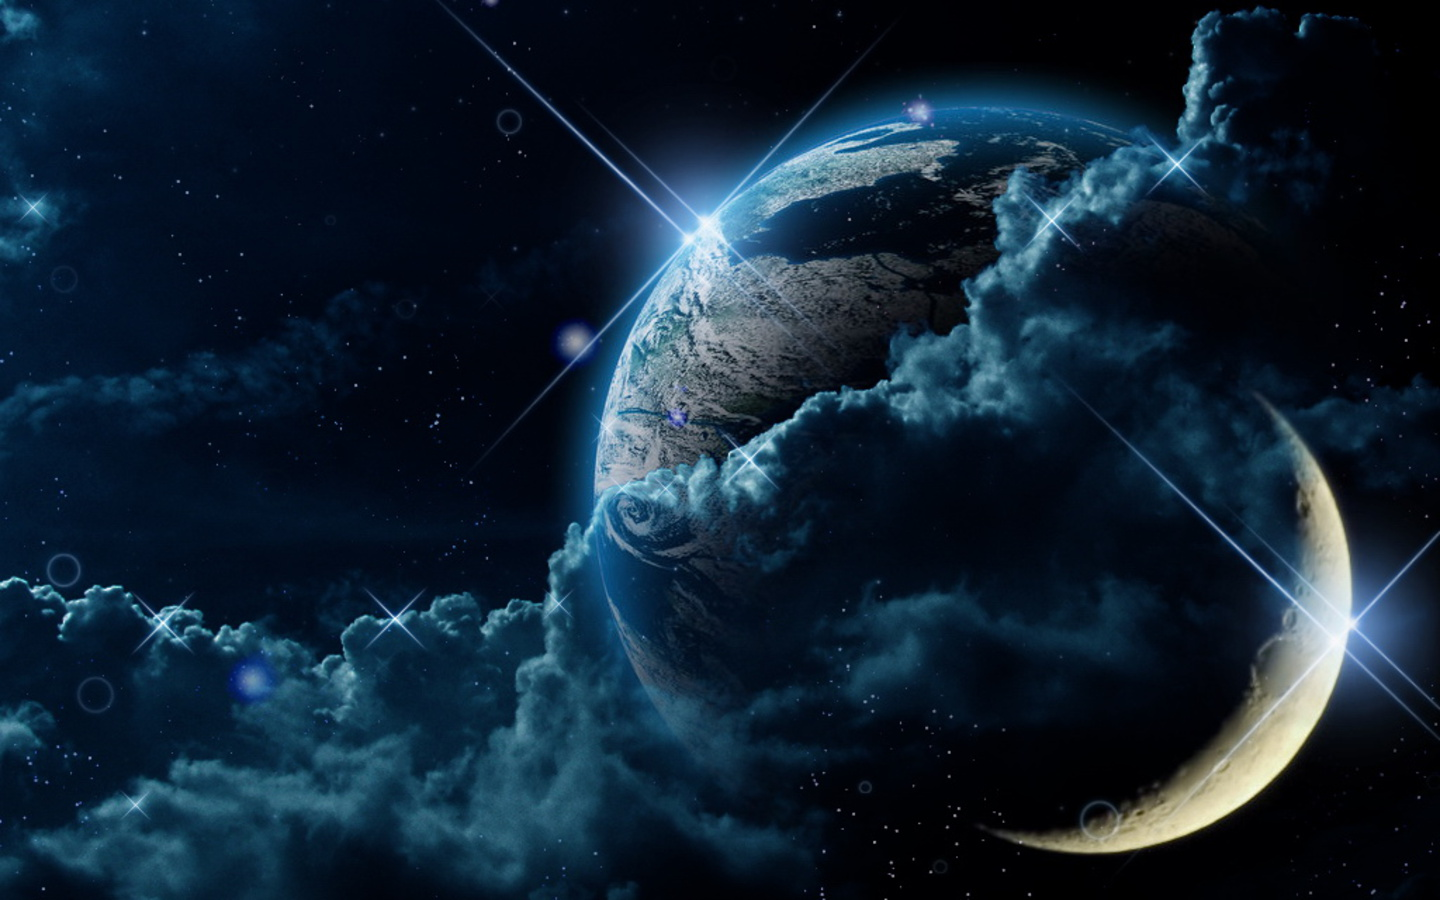 Fantasy Mysterious Space Wallpaper 1440x900 Full HD Wallpapers 1440x900